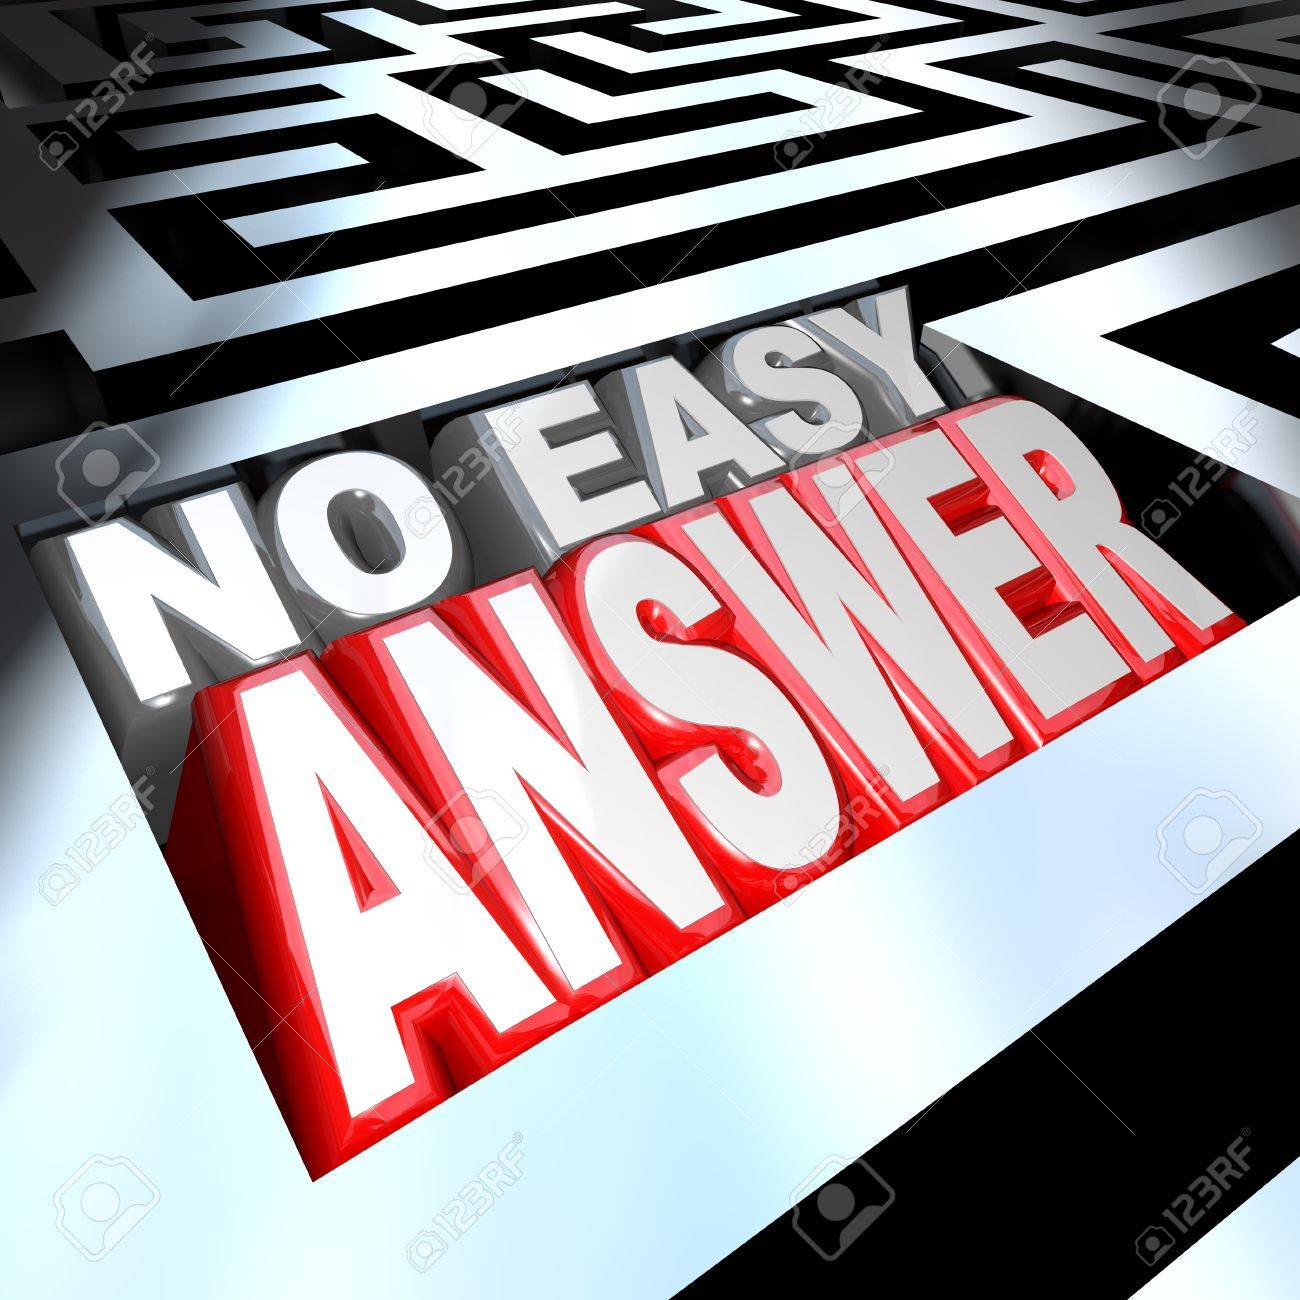 3d illustrated words No Easy Answer words in a maze without an obvious solution in sight, with a challenging problem that you must solve and overcome to succeed in life Stock Photo - 10978054